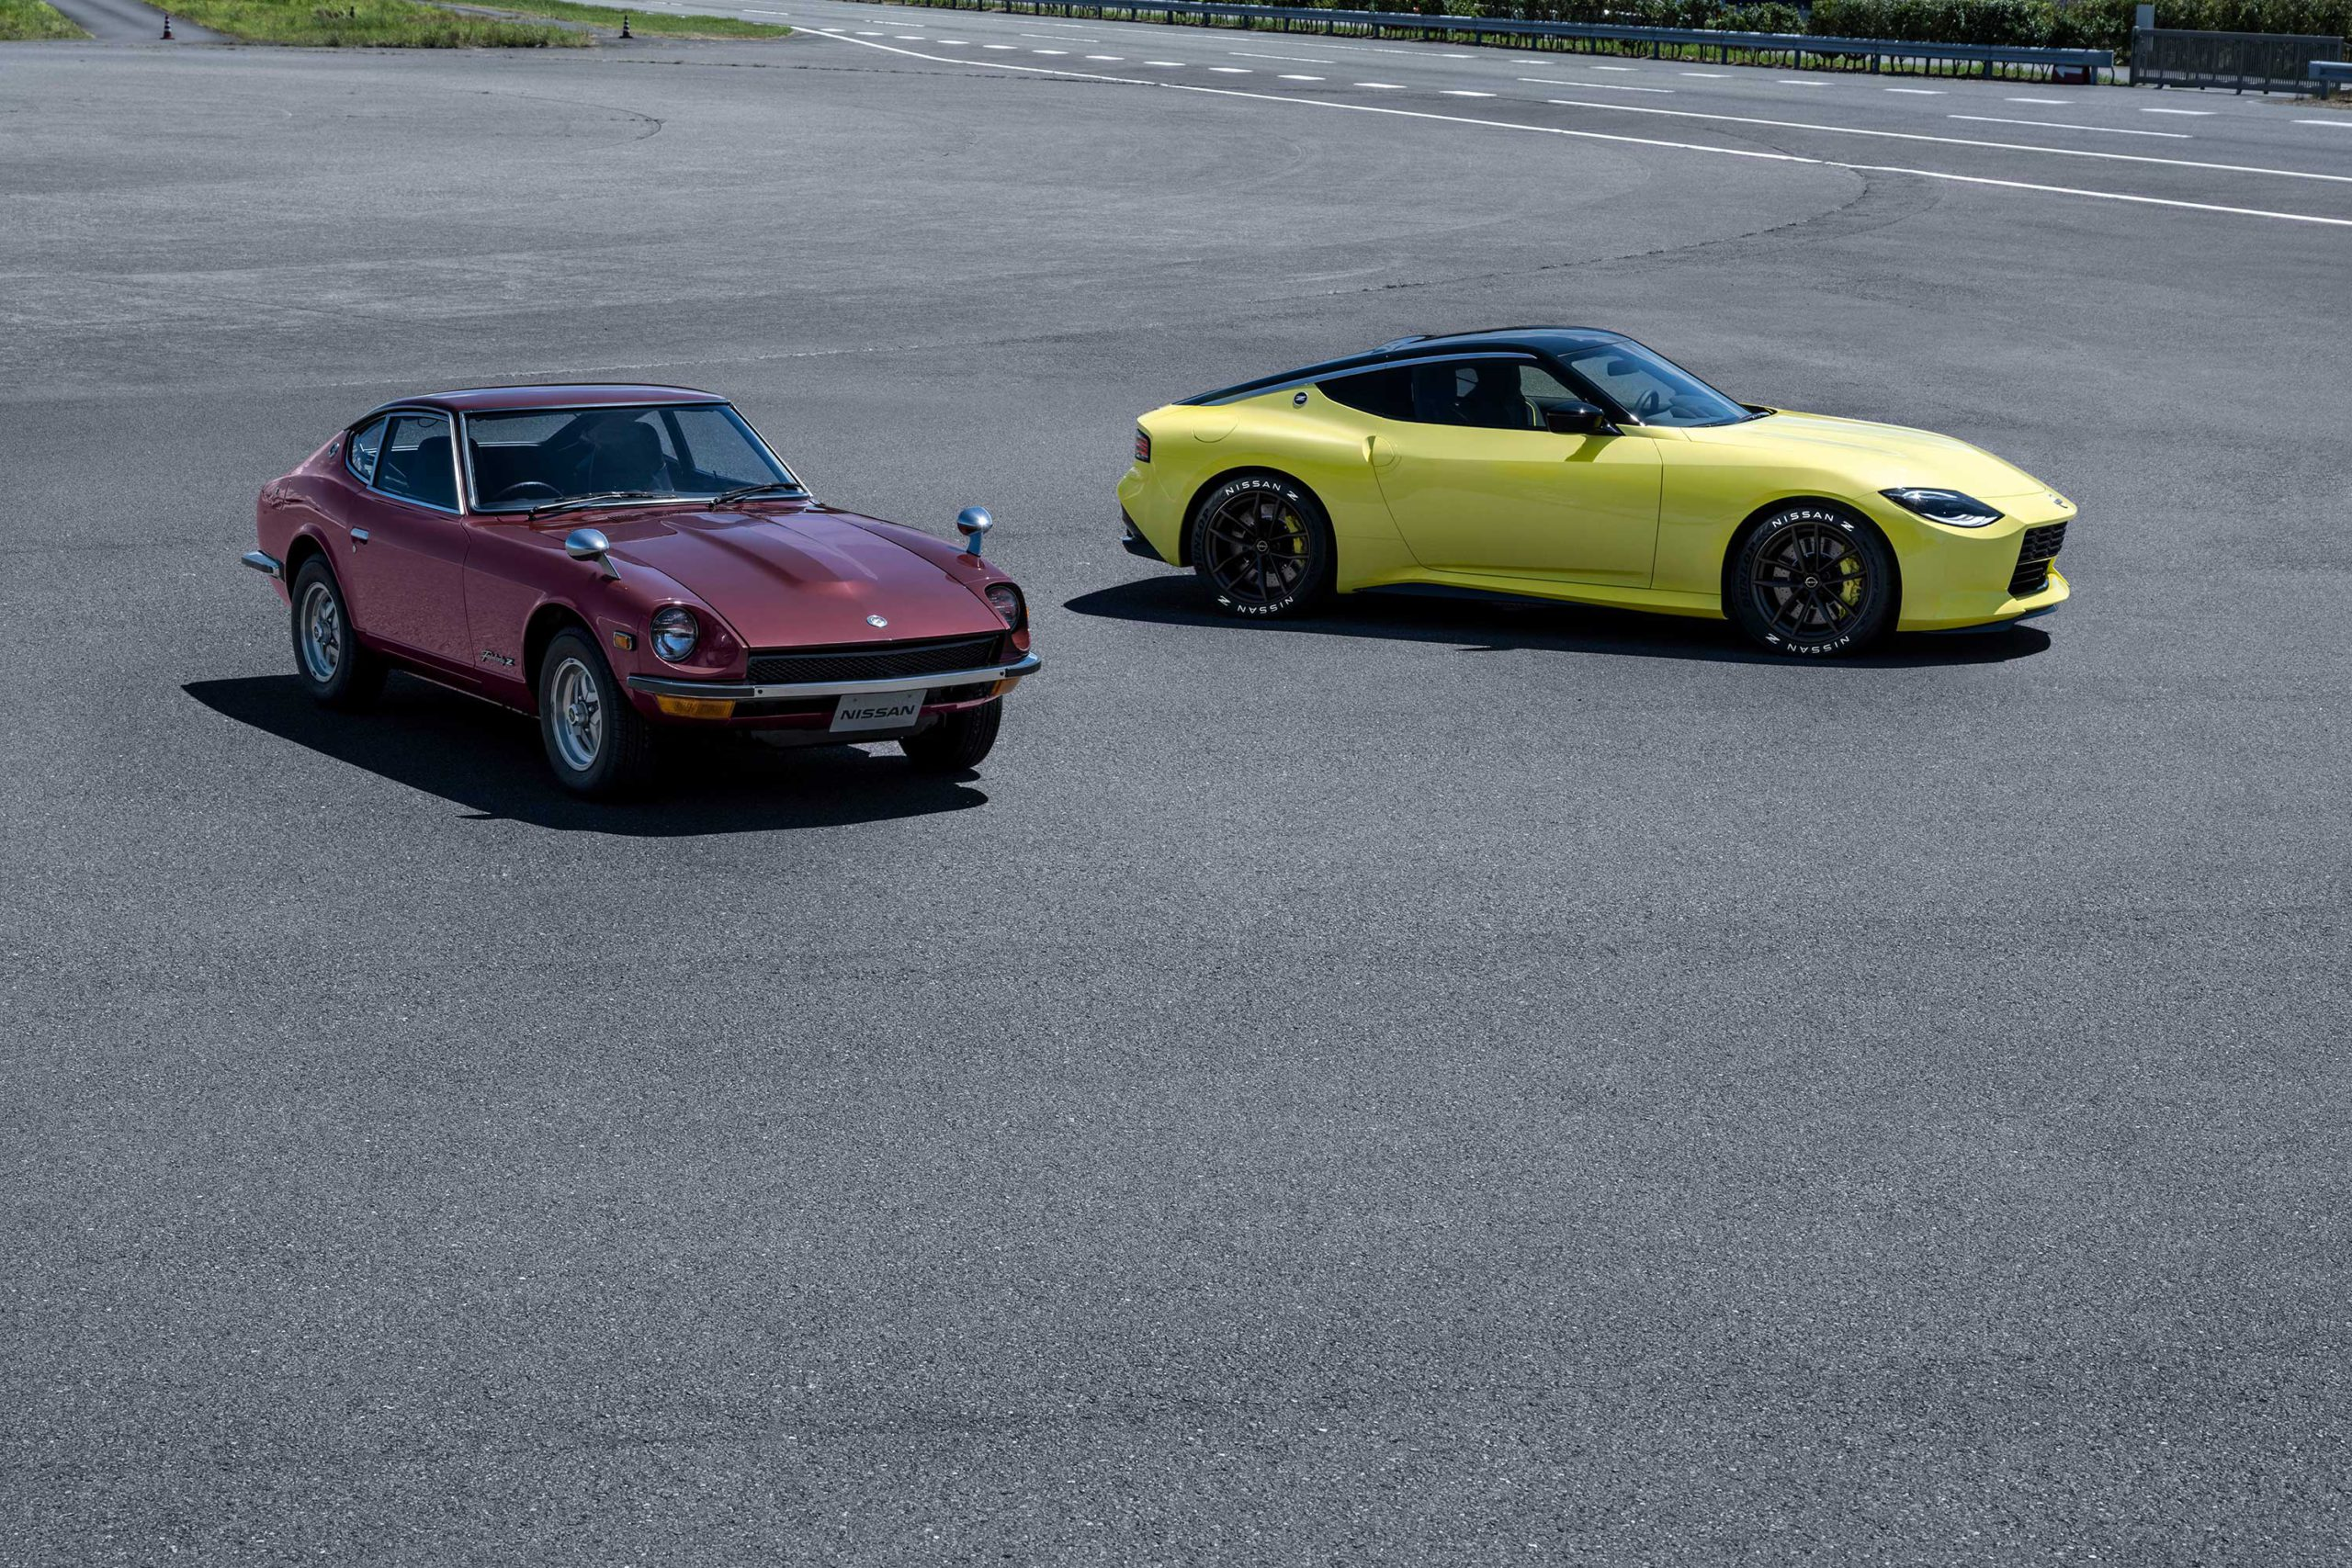 Nissan 400Z Prototype with yellow exterior next to maroon heritage car.